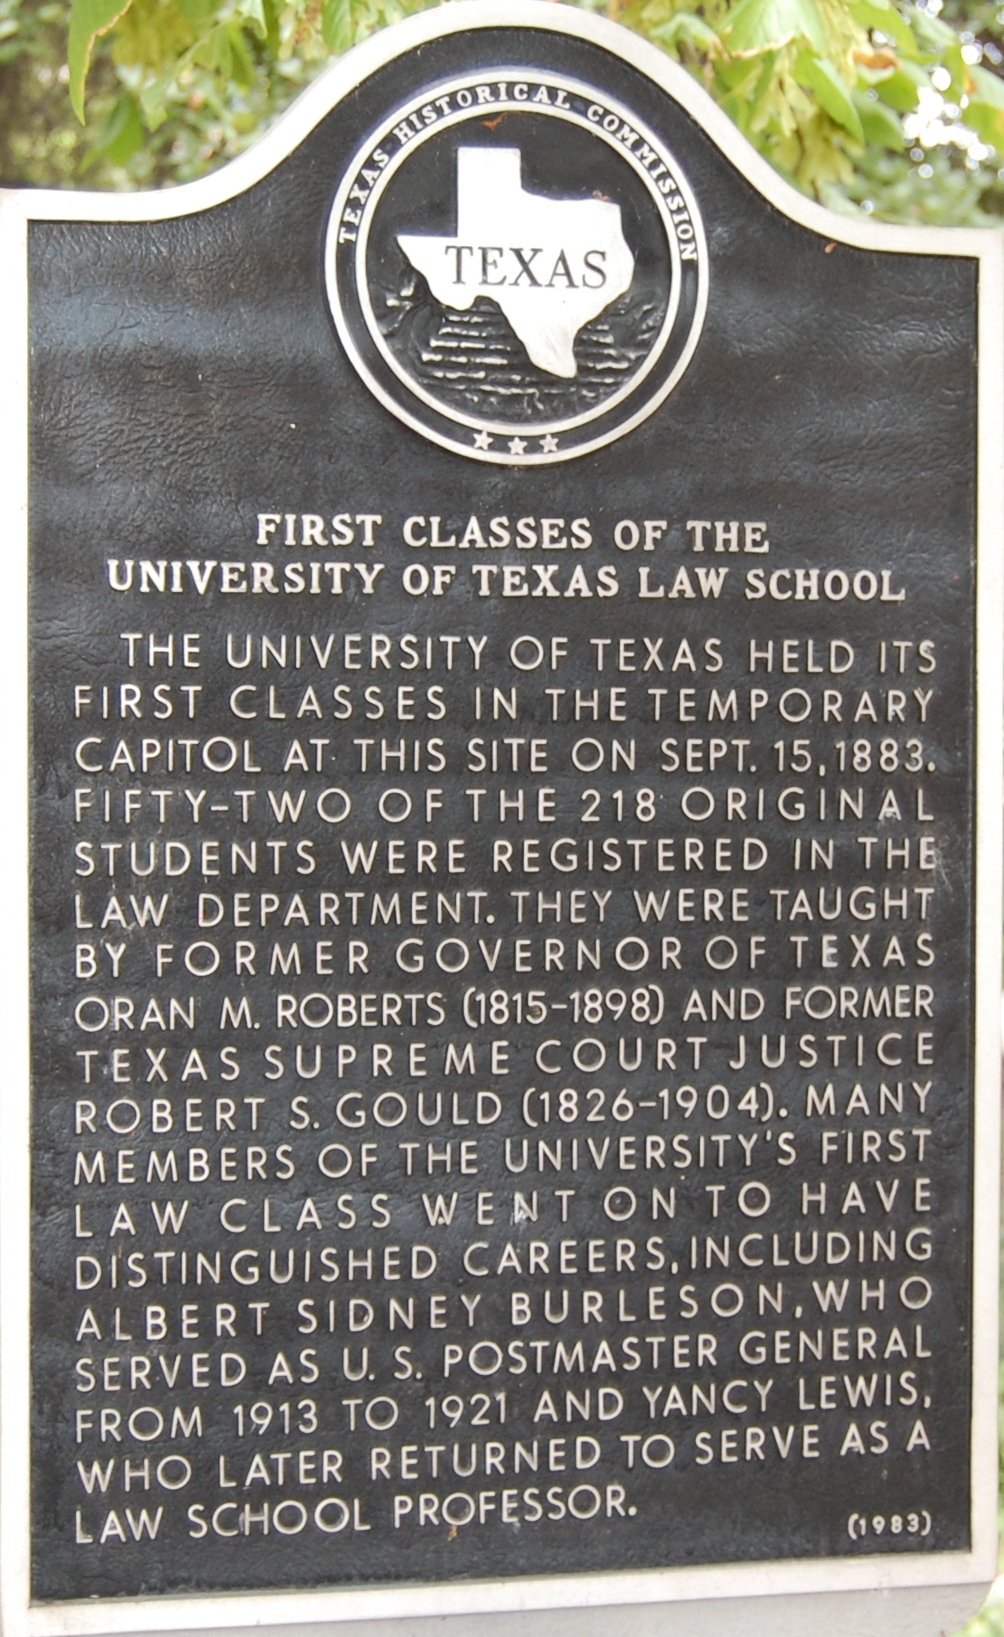 First Classes of the University of Texas Law School Marker